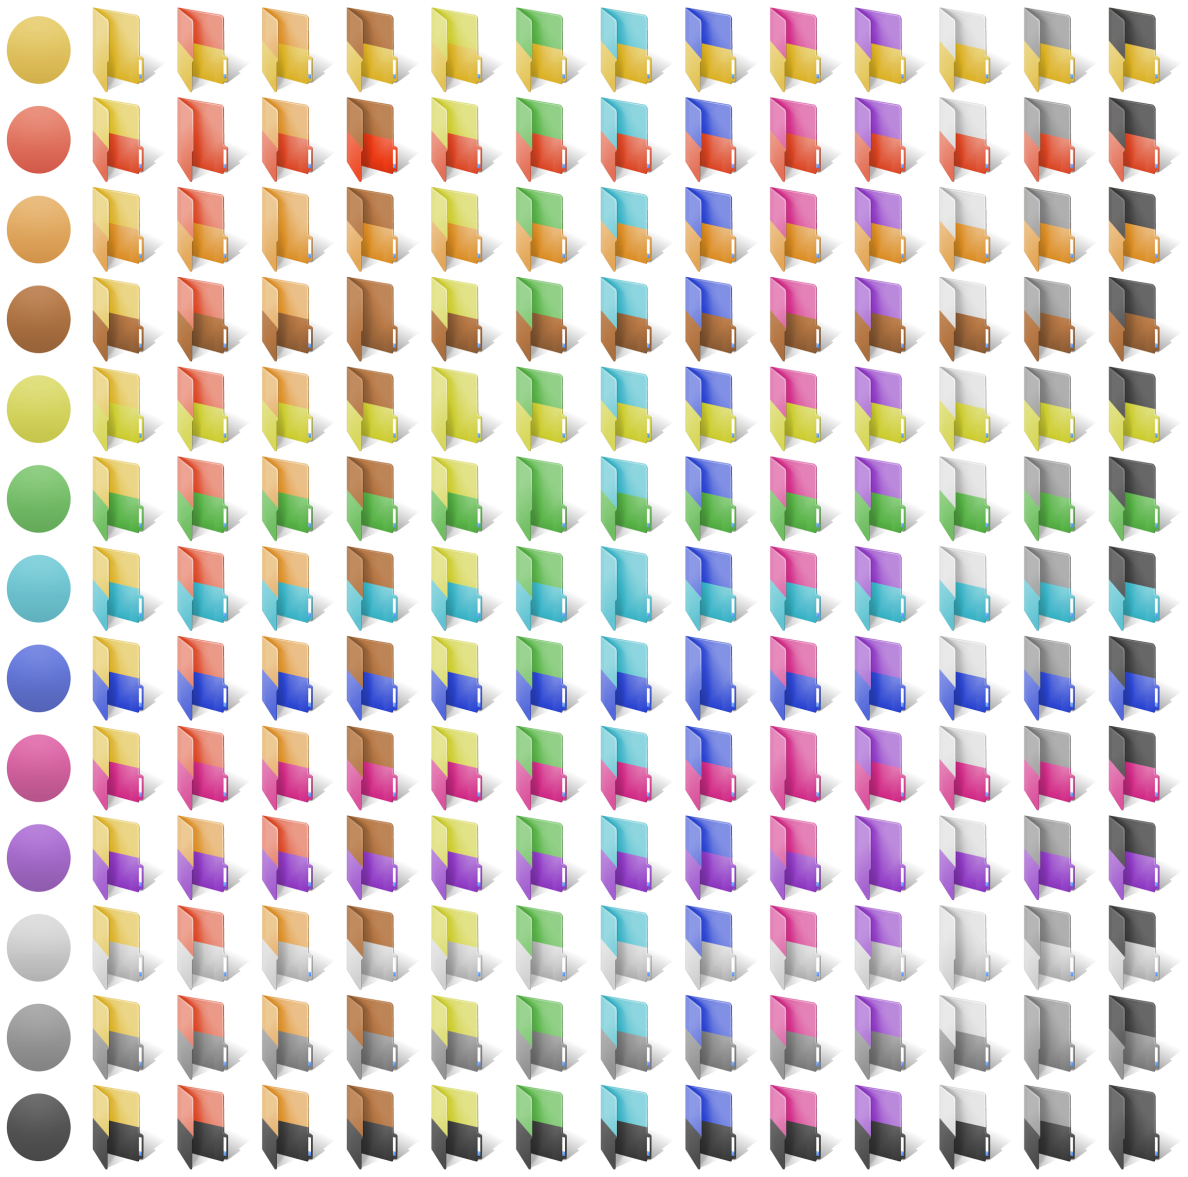 Folder Marker Pro + Two-color Folder Icons Bundle Screenshot